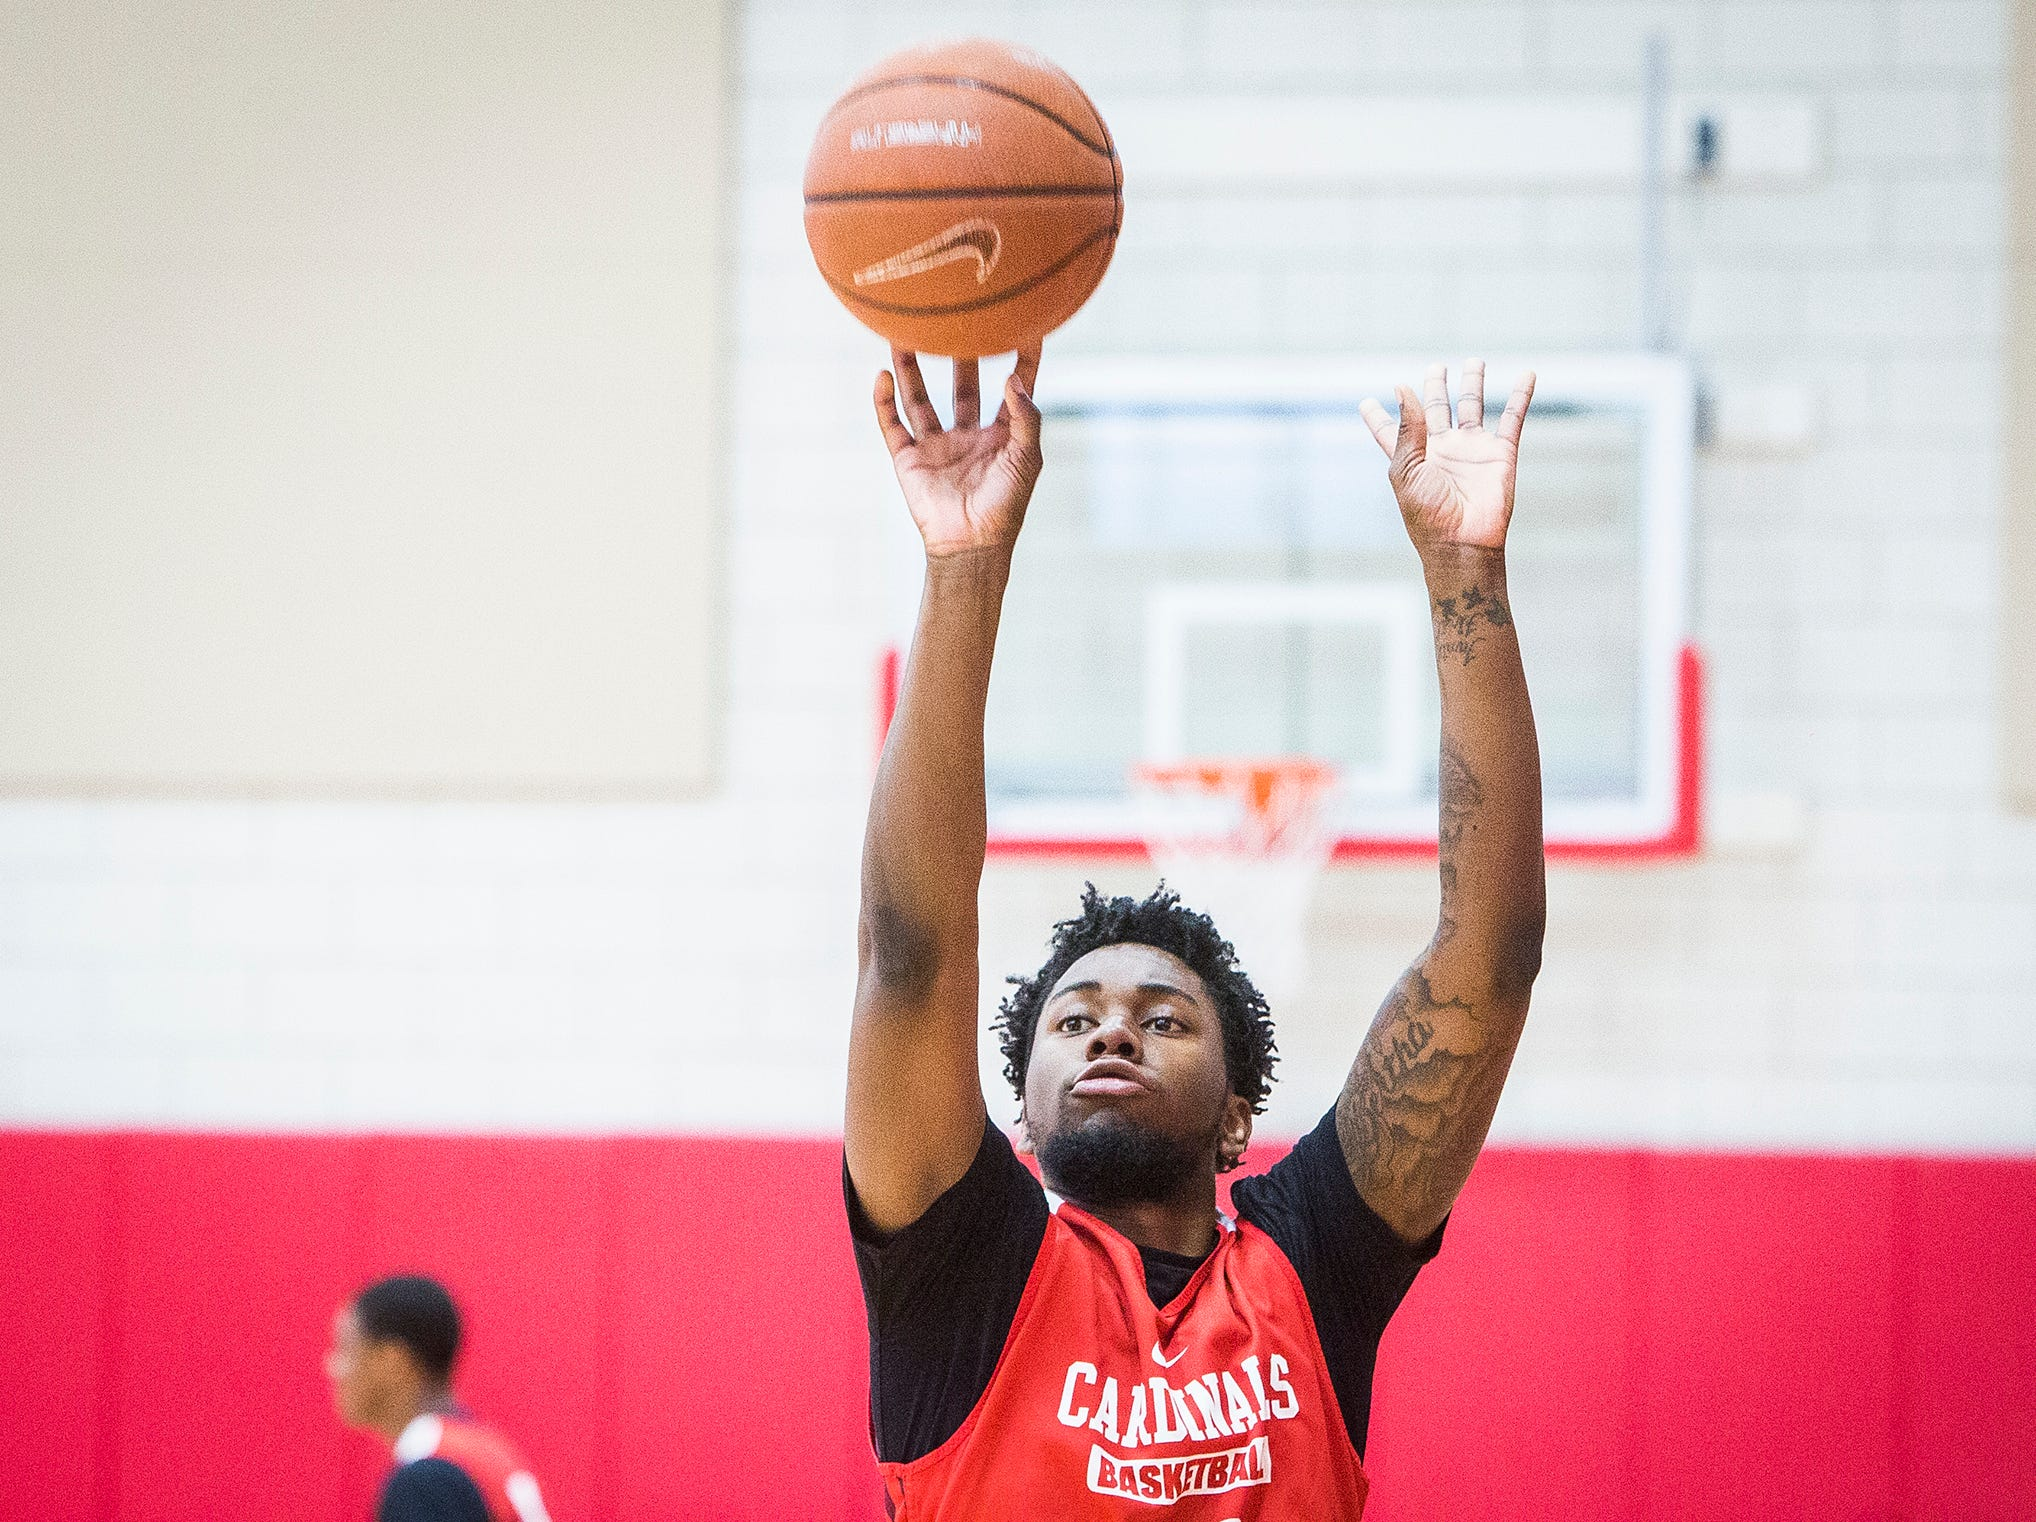 Ball State's Kani Acree shoots three-pointers during the team's first open practice Tuesday, Sept. 25, 2018.